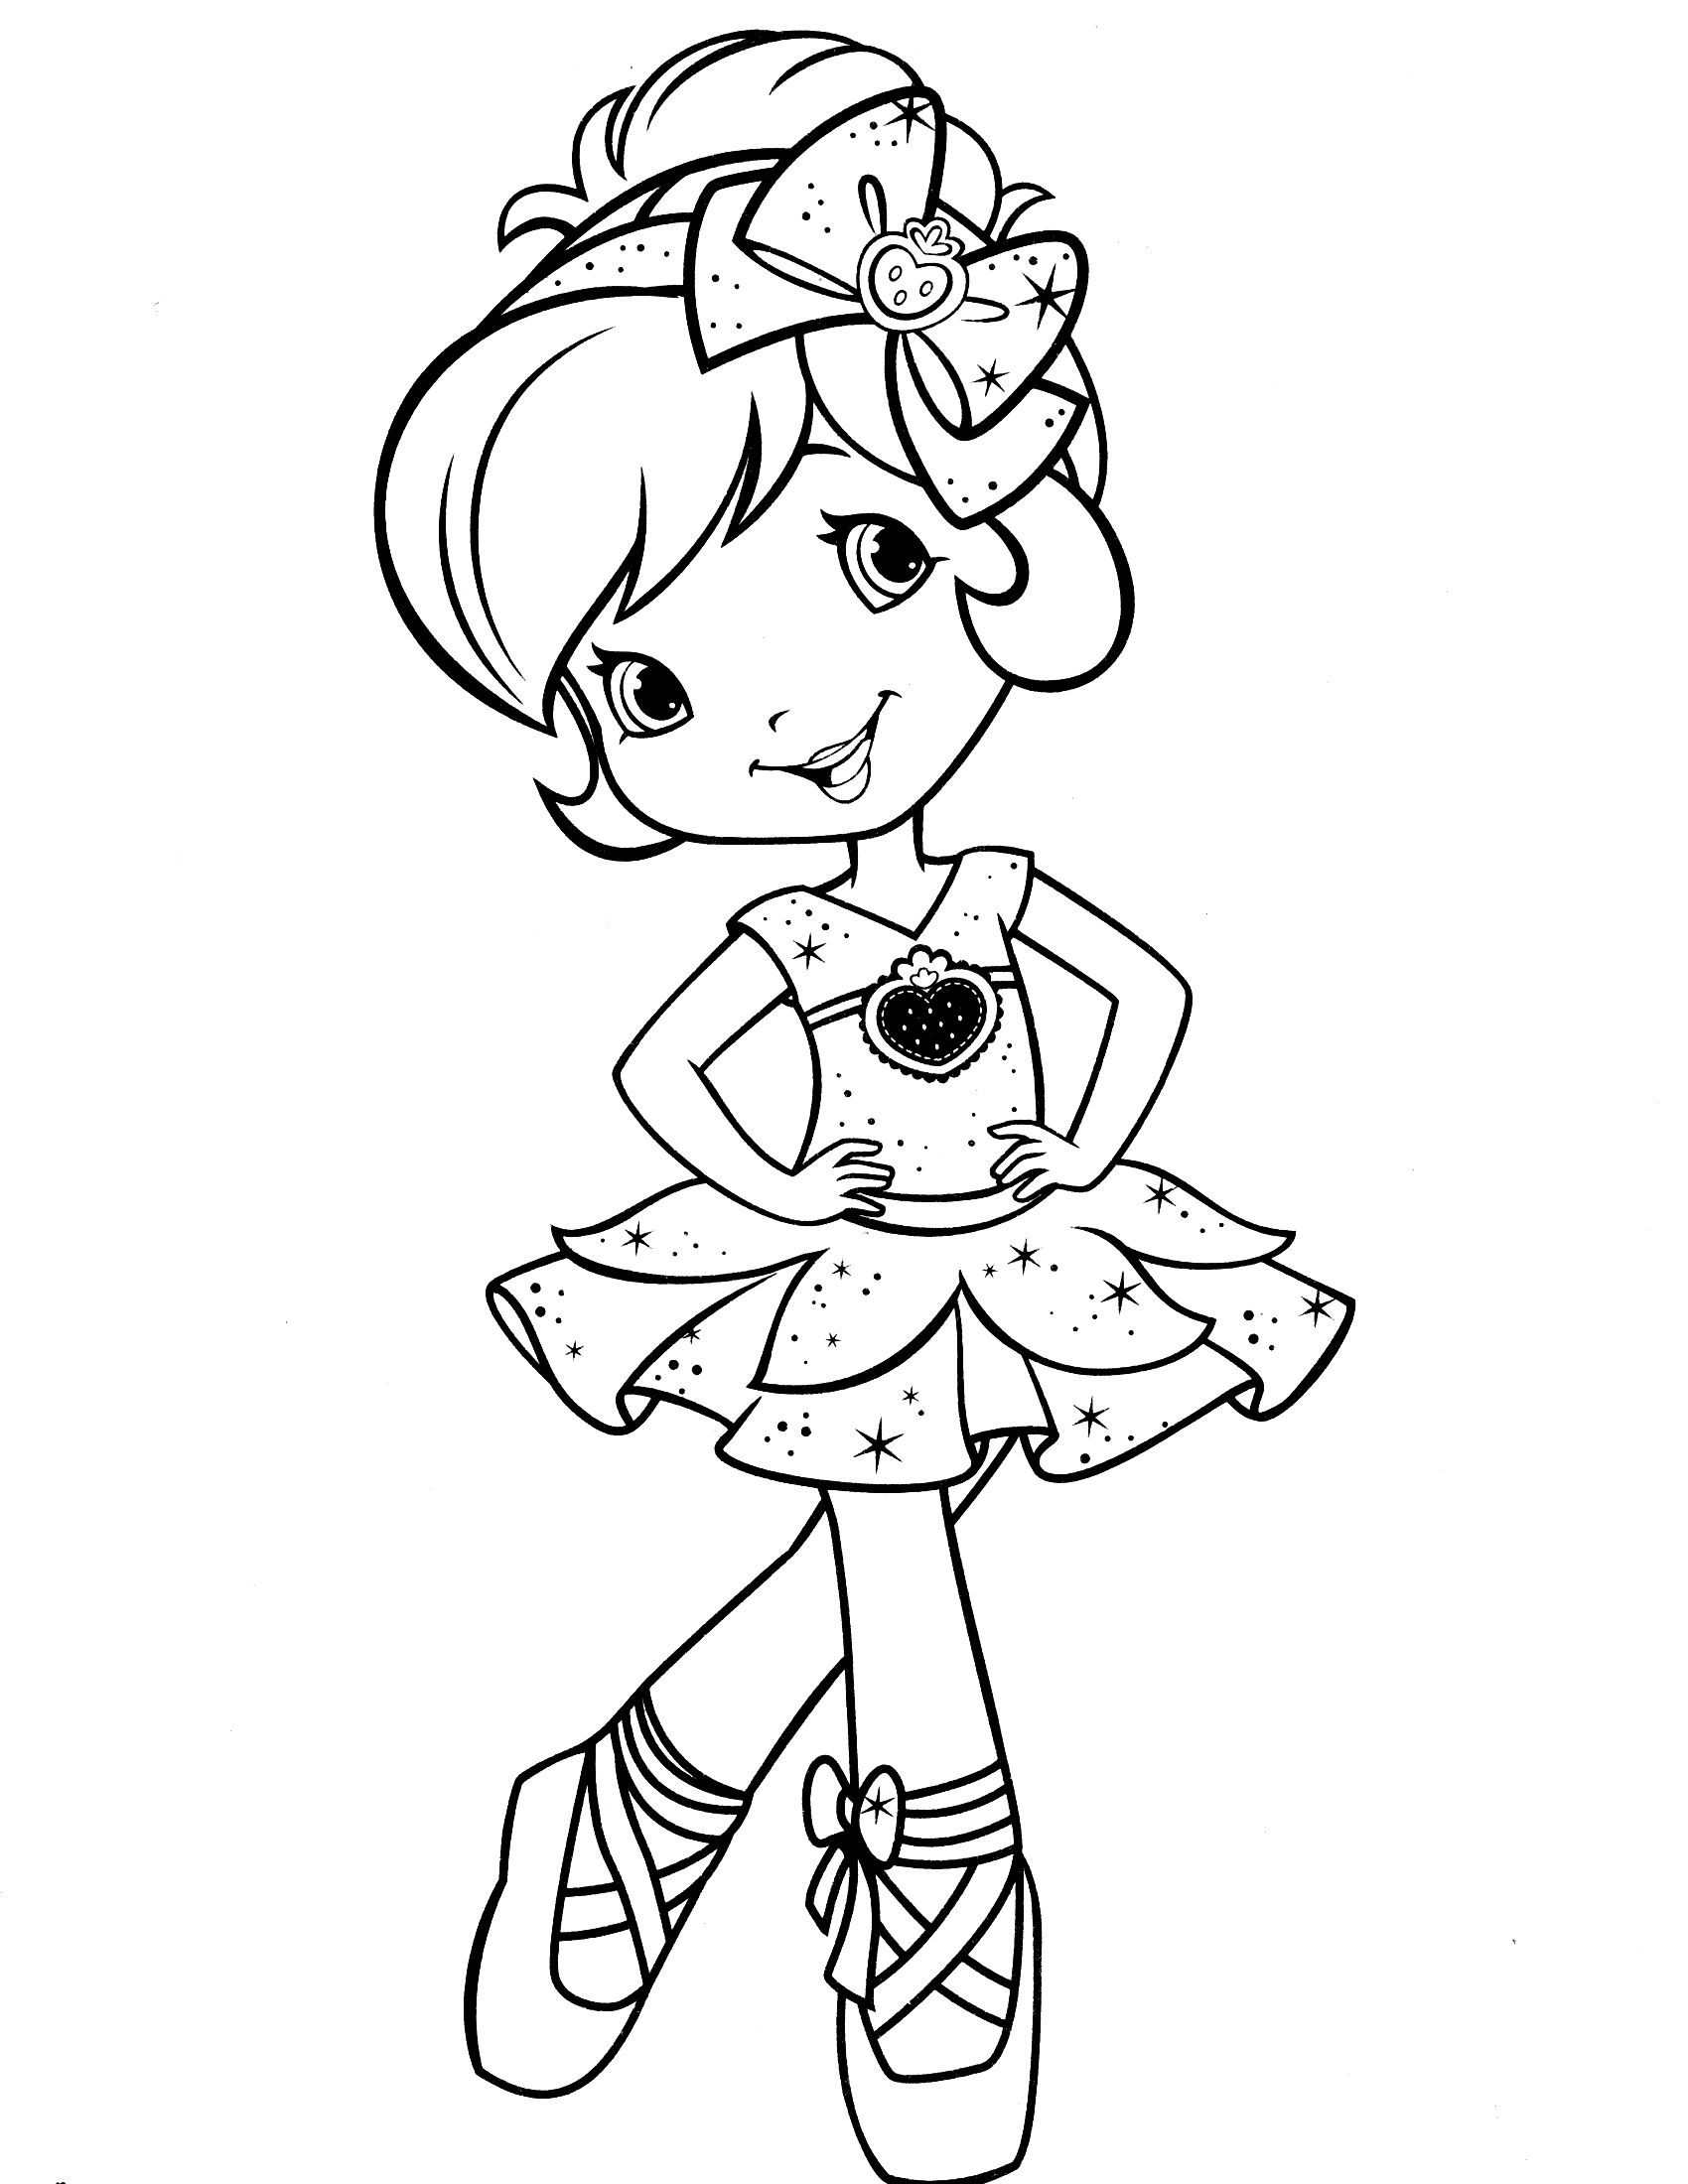 strawberry shortcake coloring page отрисовки